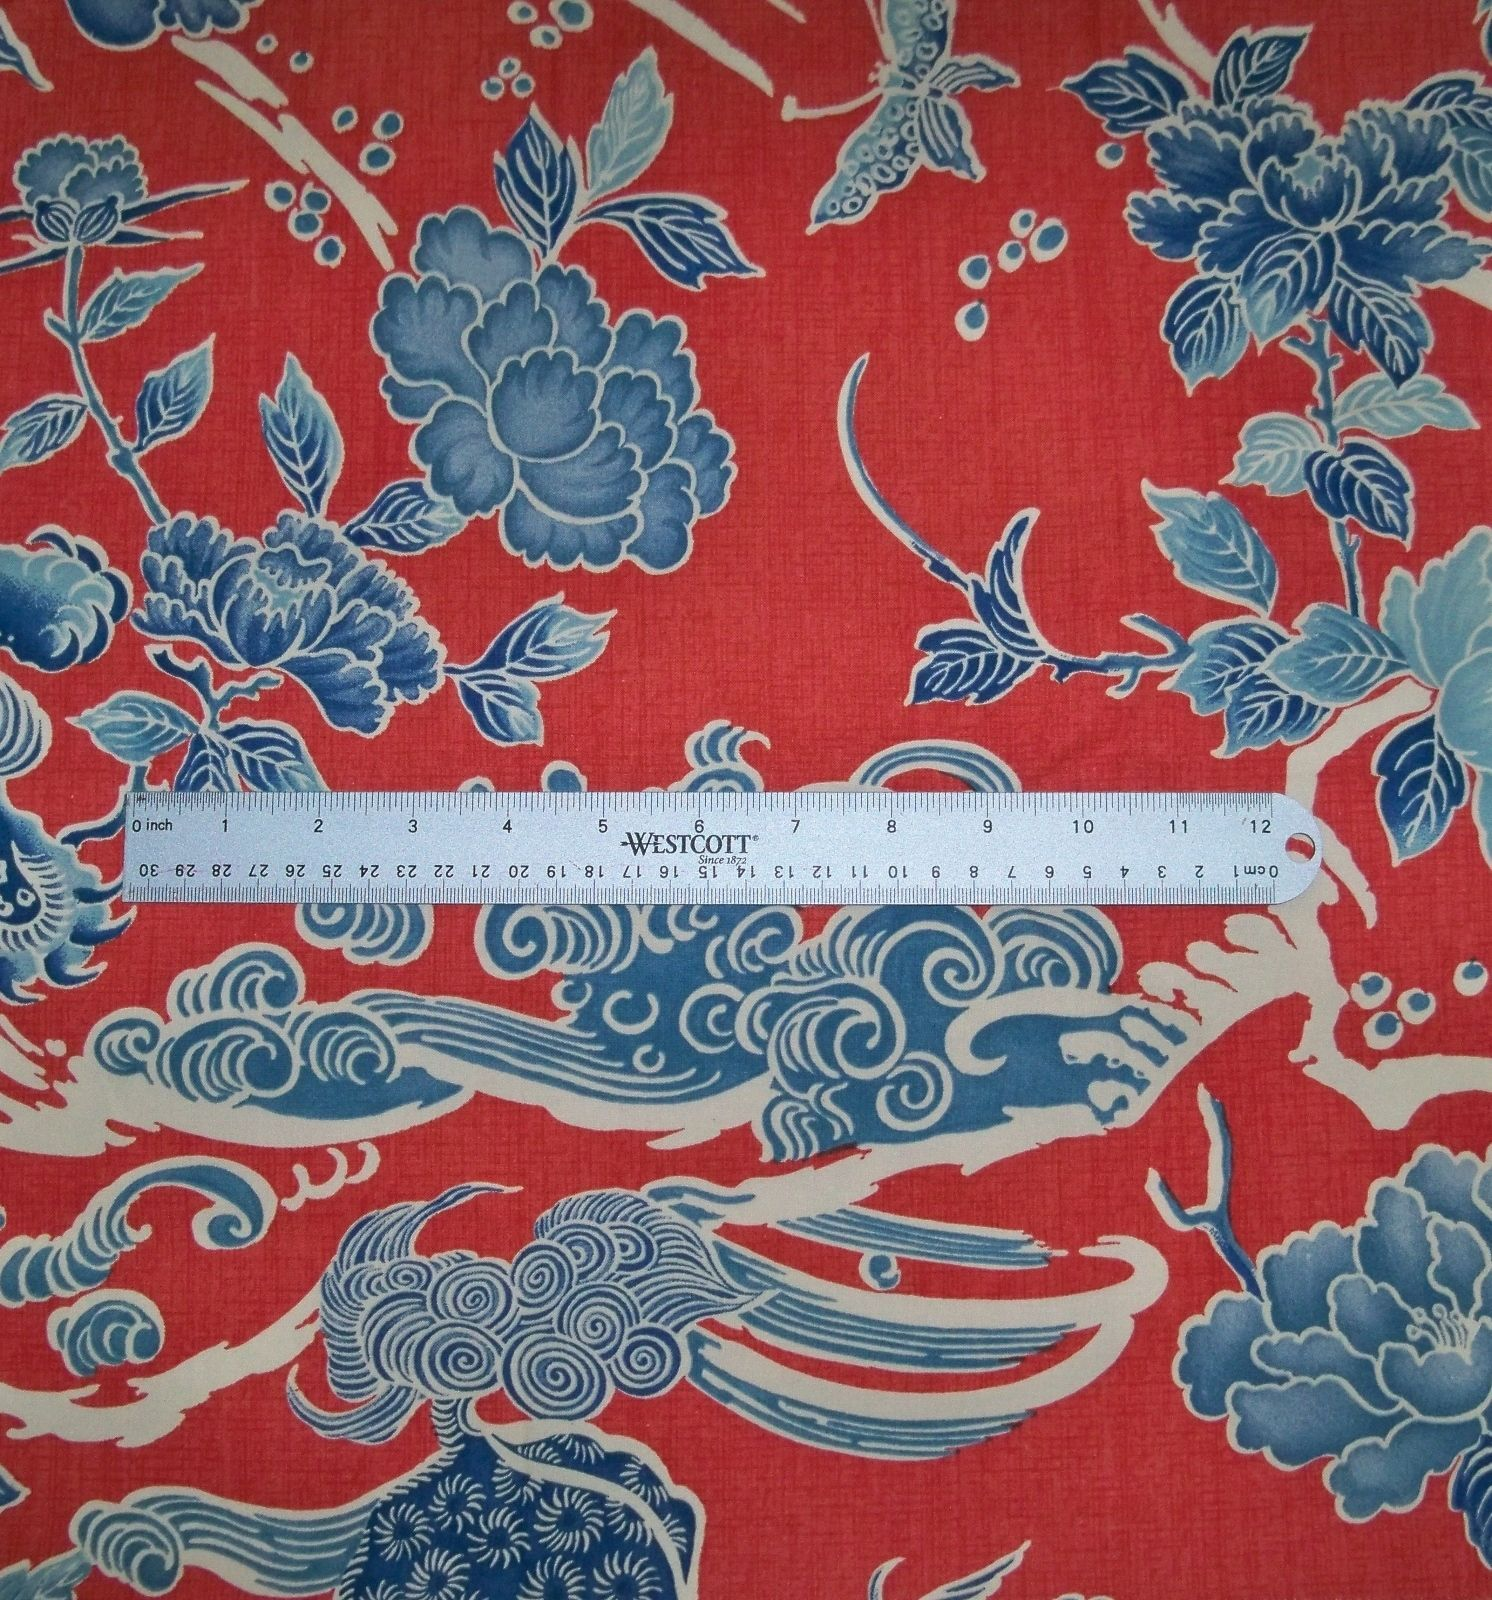 White beach print home decor fabric decorative seashell bty ebay - Brunschwig Fils Chinoiserie Shishi Dragon Toile Fabric 10 Yards Poppy Red Blue